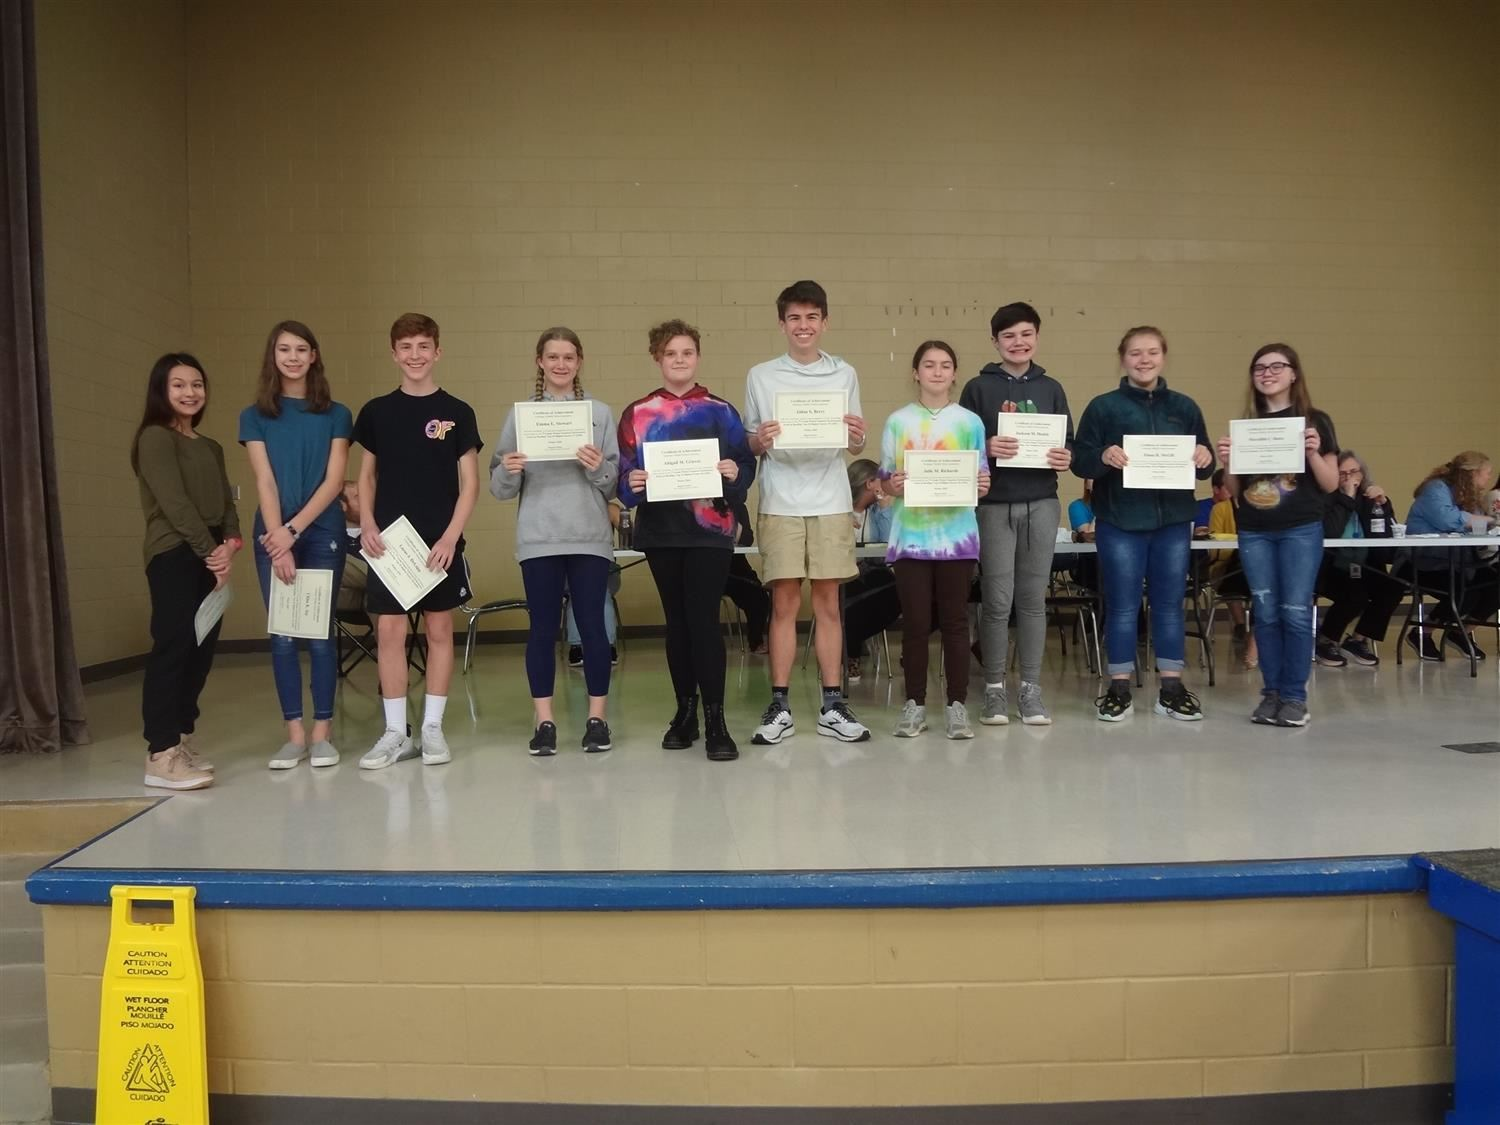 Congratulations to the Top 10 Highest Score Students and Top 10 Most Gains Students on the 7th Grade Winter Reading and Math Scantron!